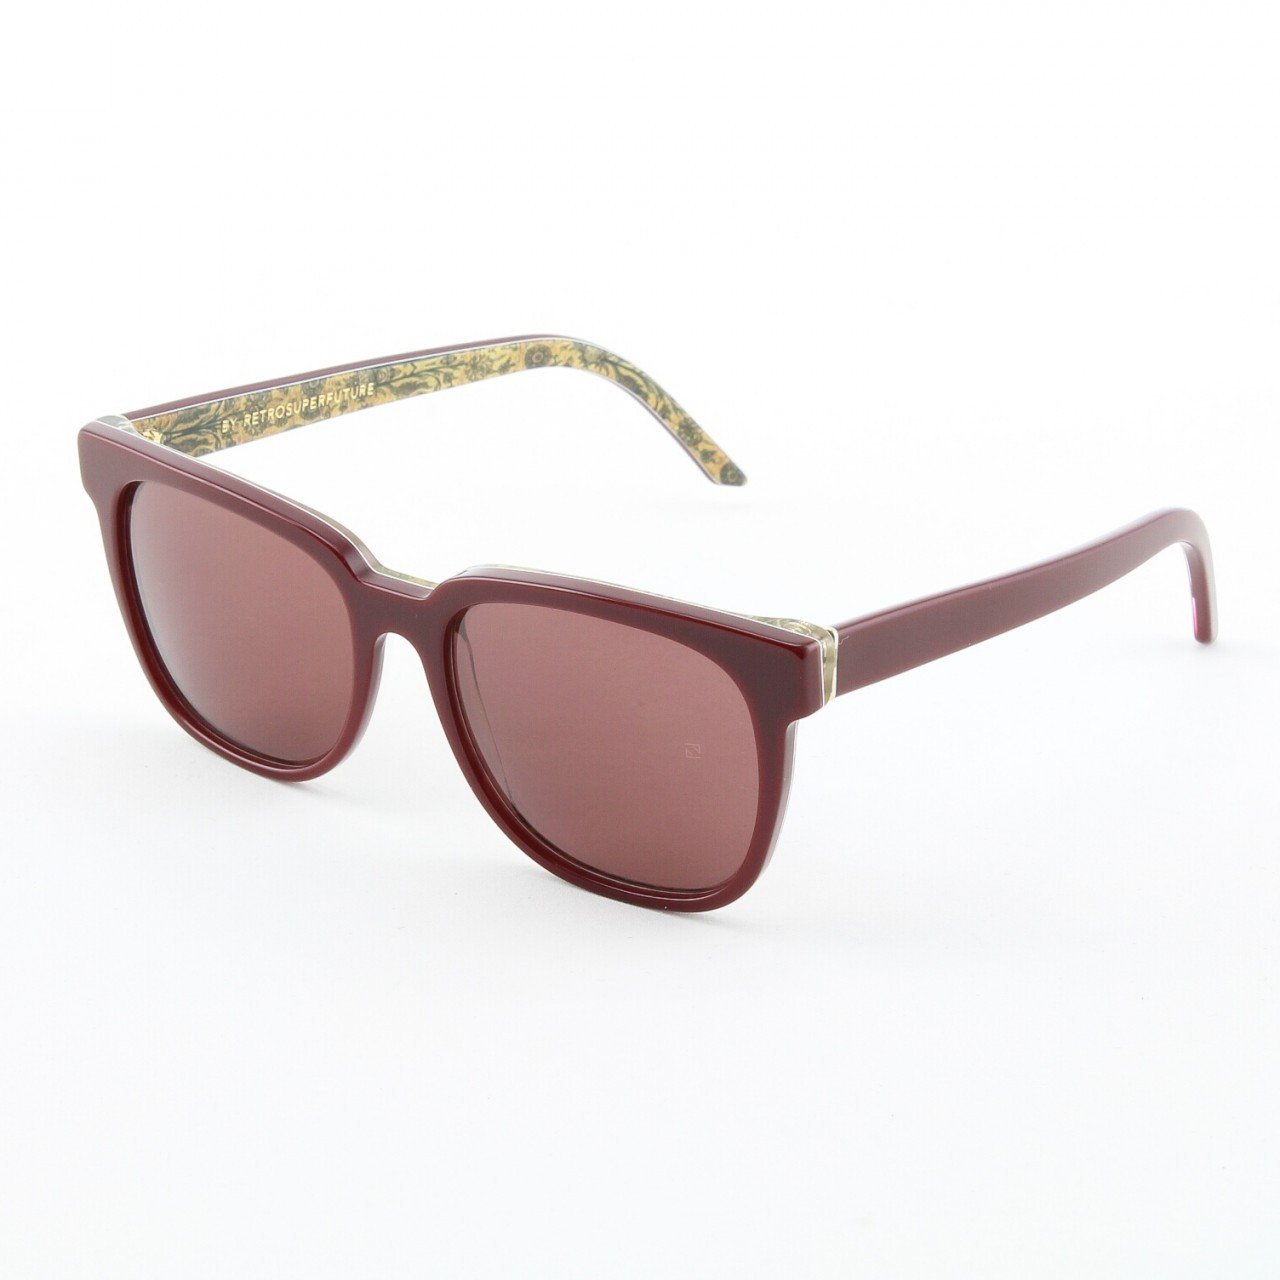 Super People 812/3T Sunglasses Wine Golden Tapestry with Red Zeiss Lenses by RETROSUPERFUTURE